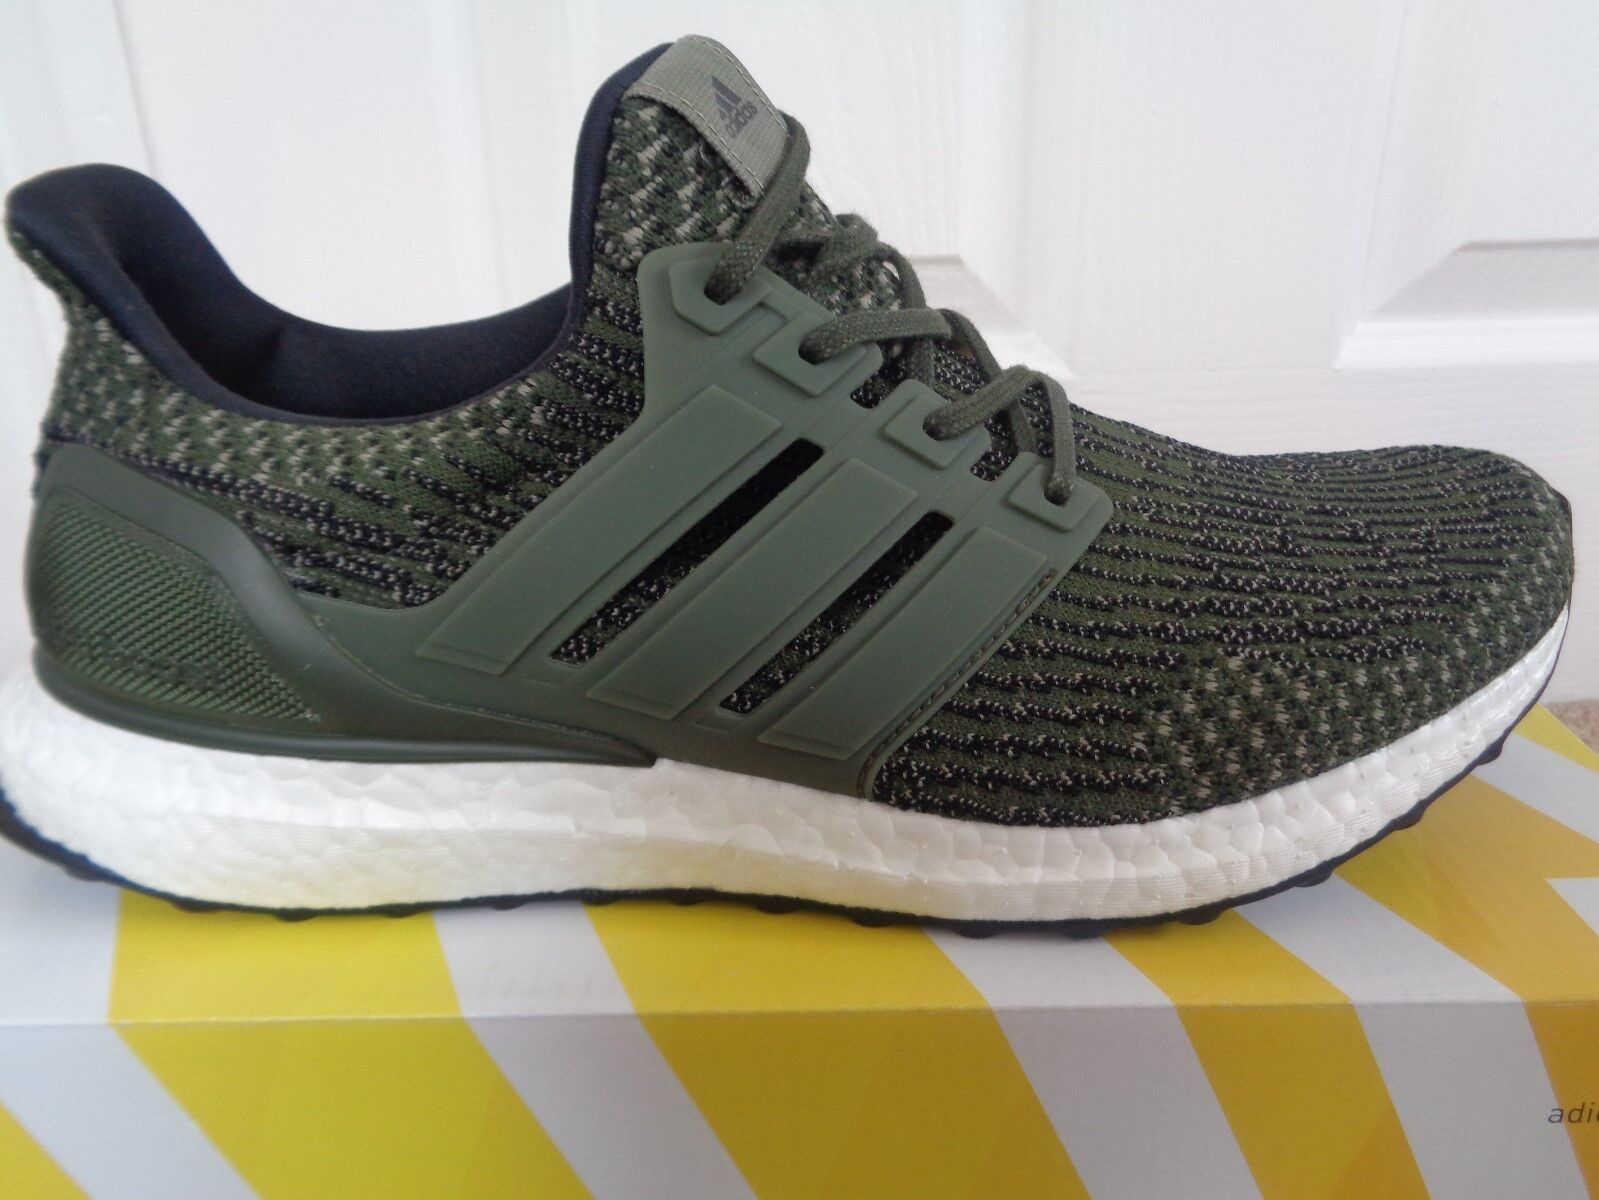 fe681644dc3 adidas Ultraboost 3.0 Ltd Trace Cargo UK 8 Khaki Olive Green Mens ...